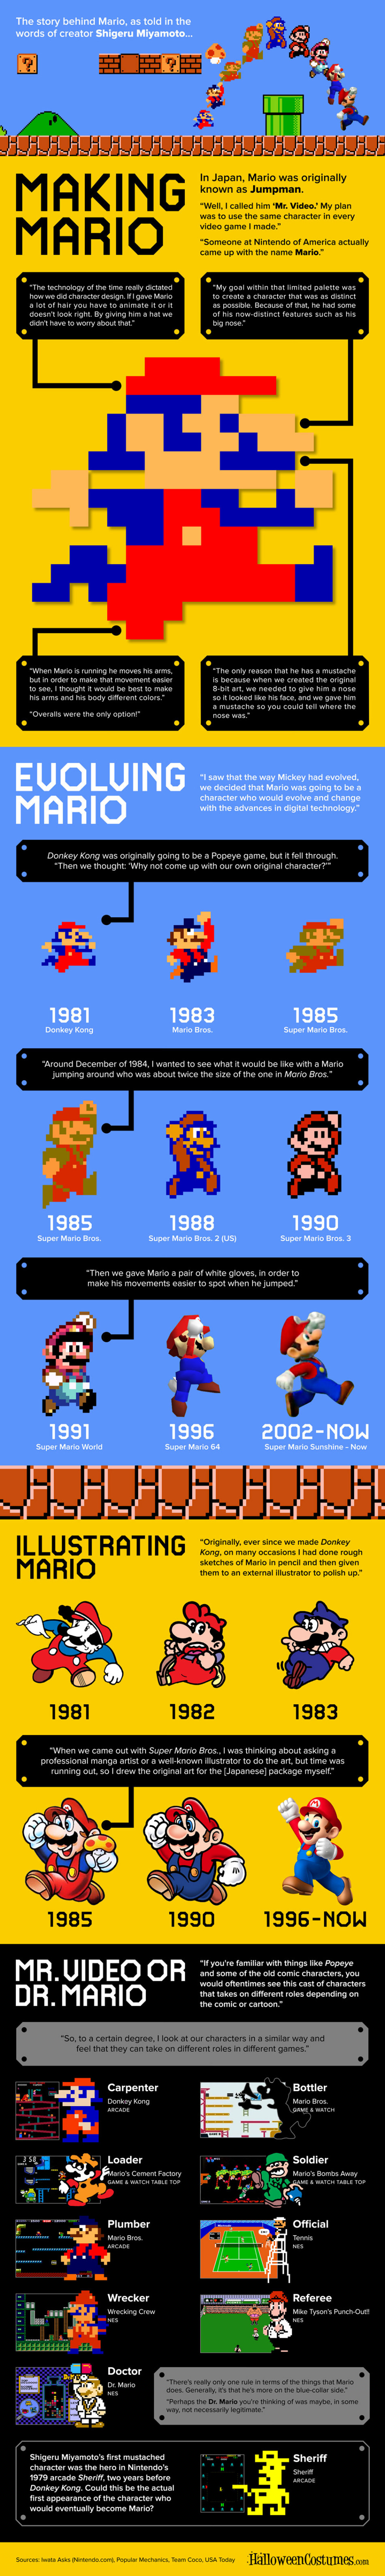 The Origin And Evolution Of Super Mario